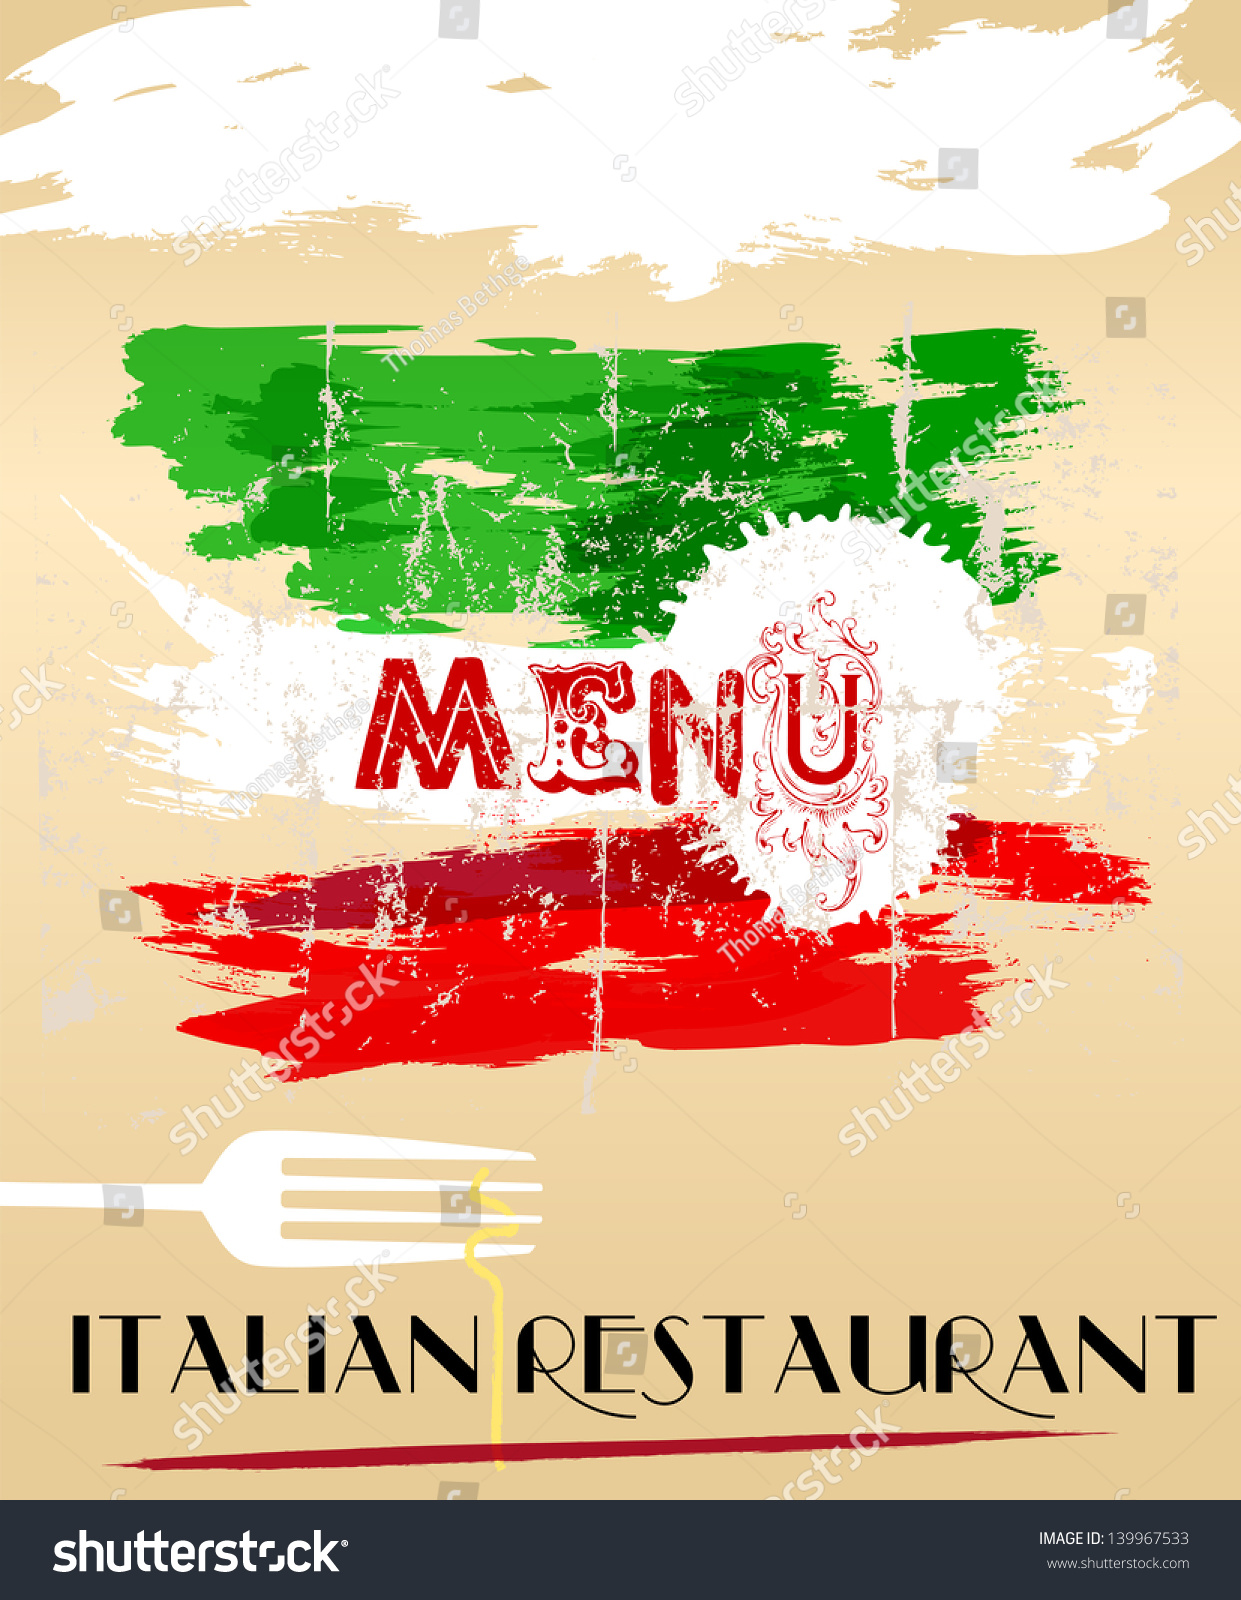 Italian Restaurant Names: Menu Design For Italian Restaurant, Free Space For